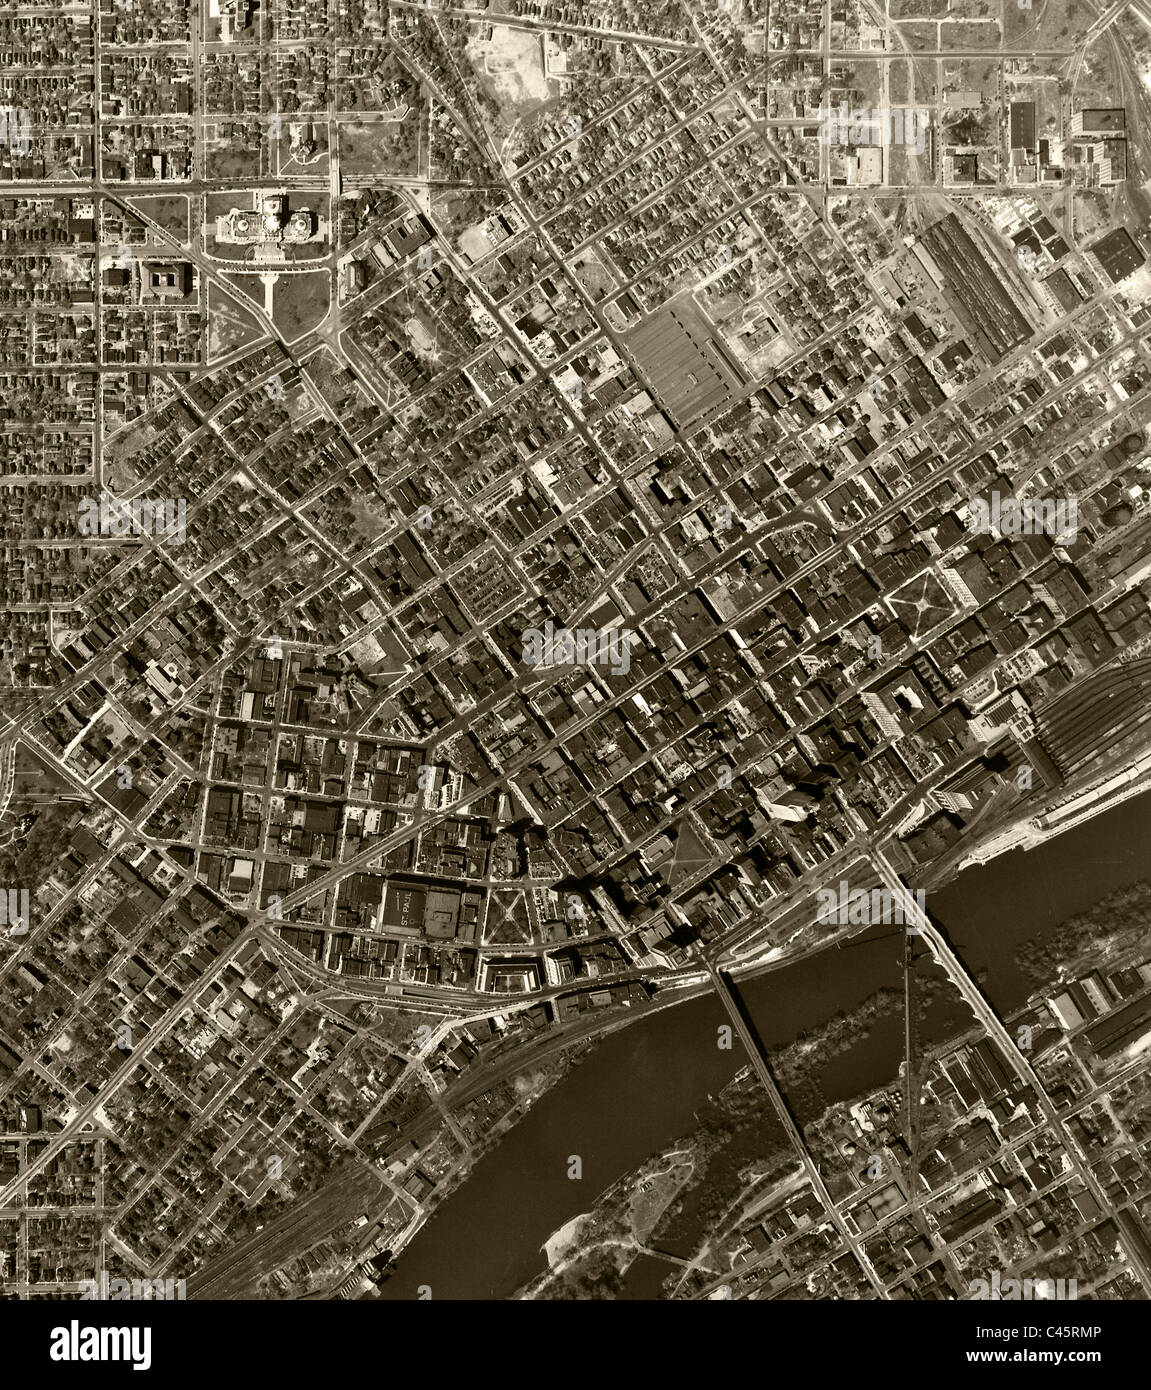 historical aerial photo map St. Paul Minnesota 1947 - Stock Image